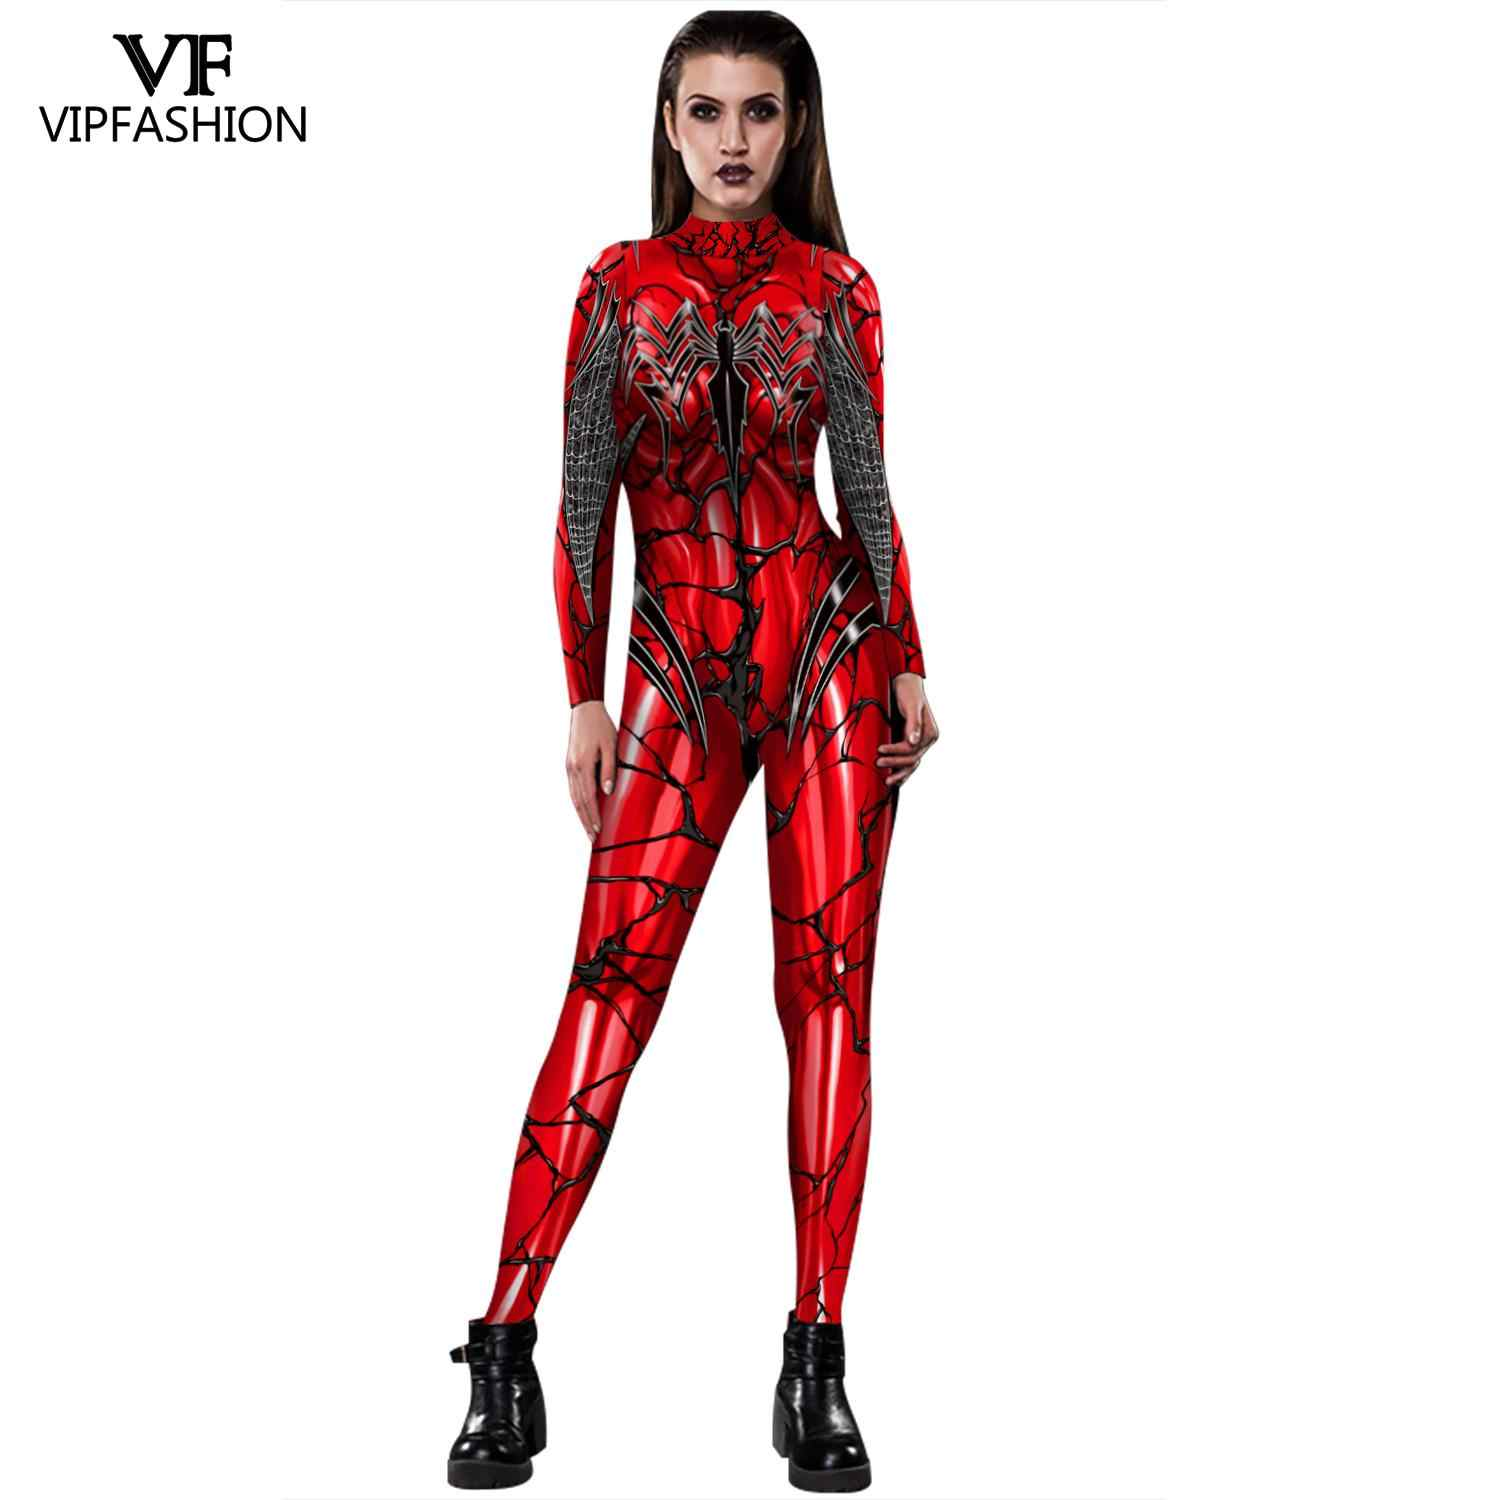 VIP FASHION Lycra Spider Cosplay Costume Superhero BodySuit  Zentai Iron Spider Jumpsuit For Halloween Costume